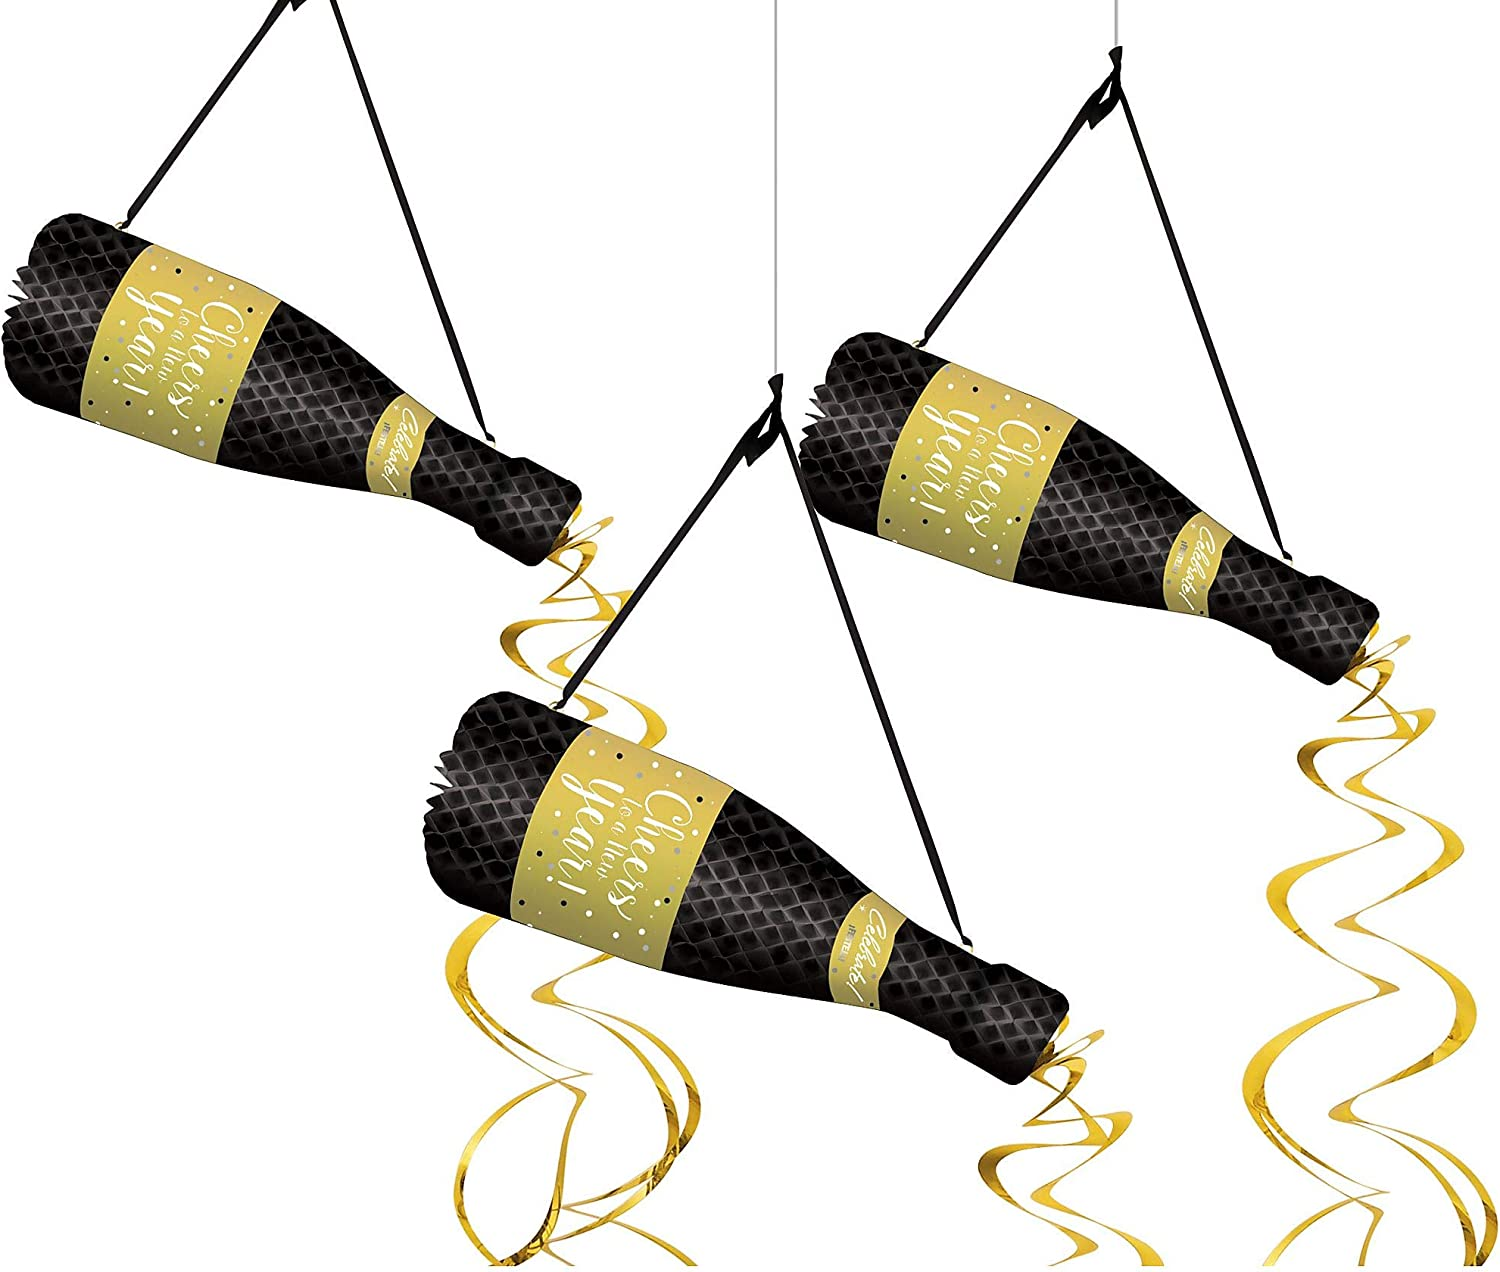 amscan 670680 New Years Eve Champagne Bottle Hanging Honeycomb Décor, One Size, Multicolor (Pack of 6)